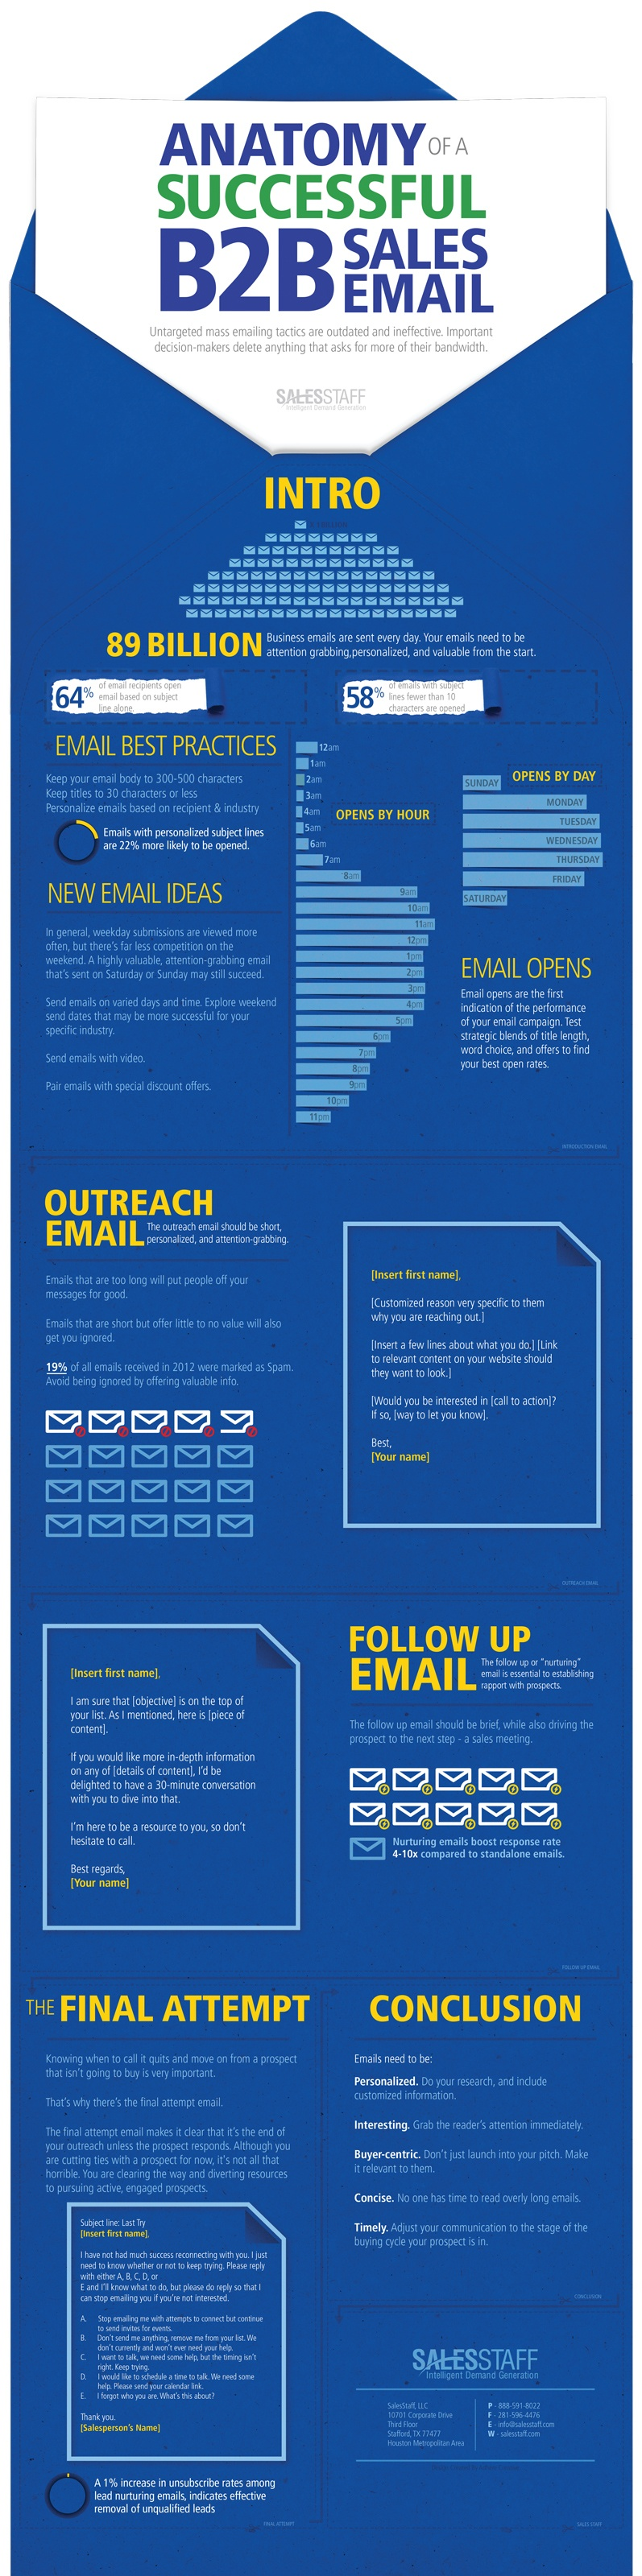 The-Anatomy-of-a-Successful-B2B-Sales-Email.jpg